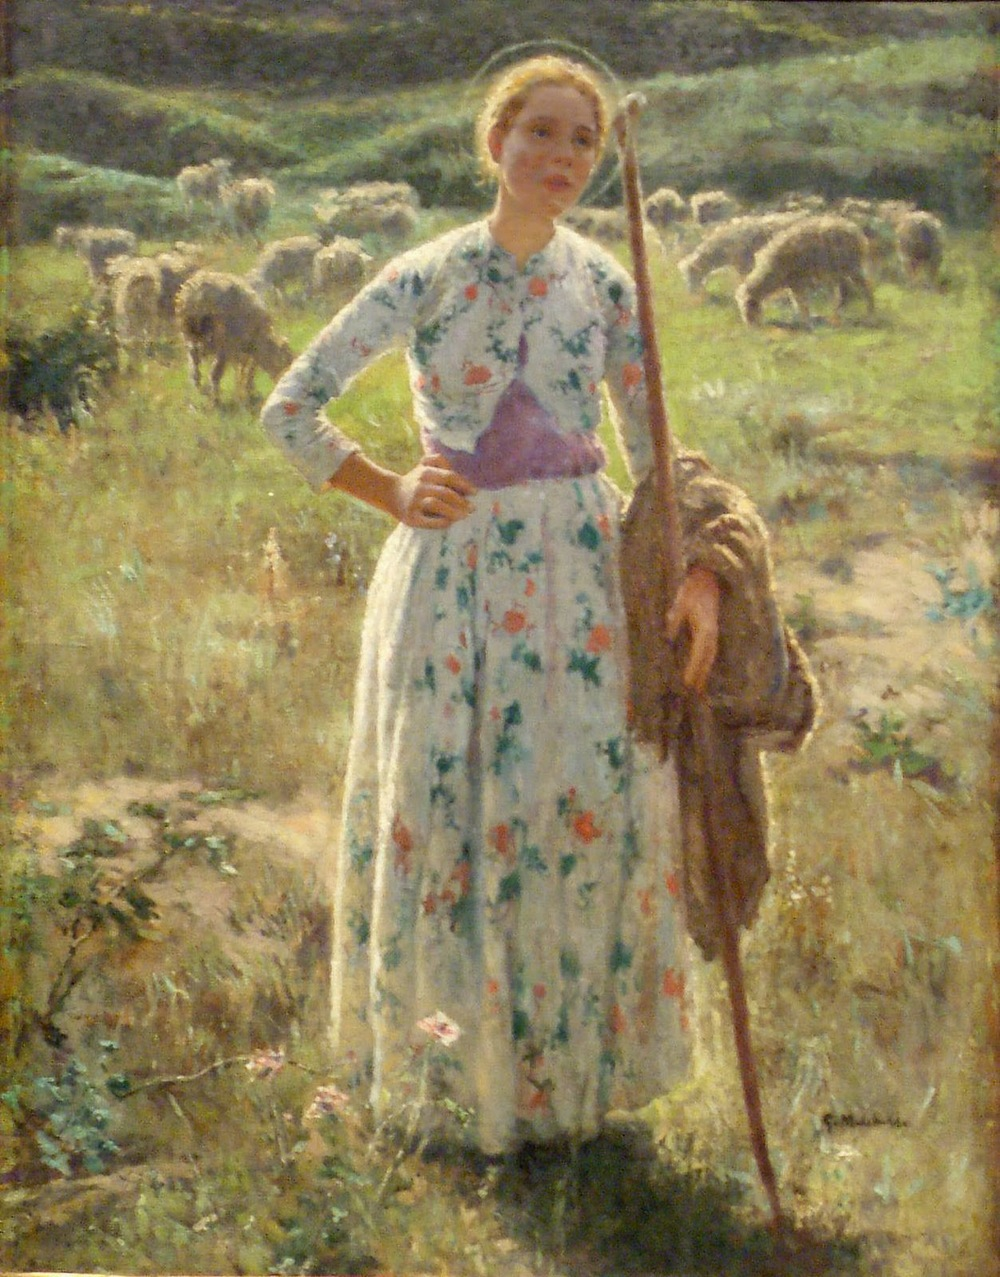 'Joan of Arc' by Gari Melchers